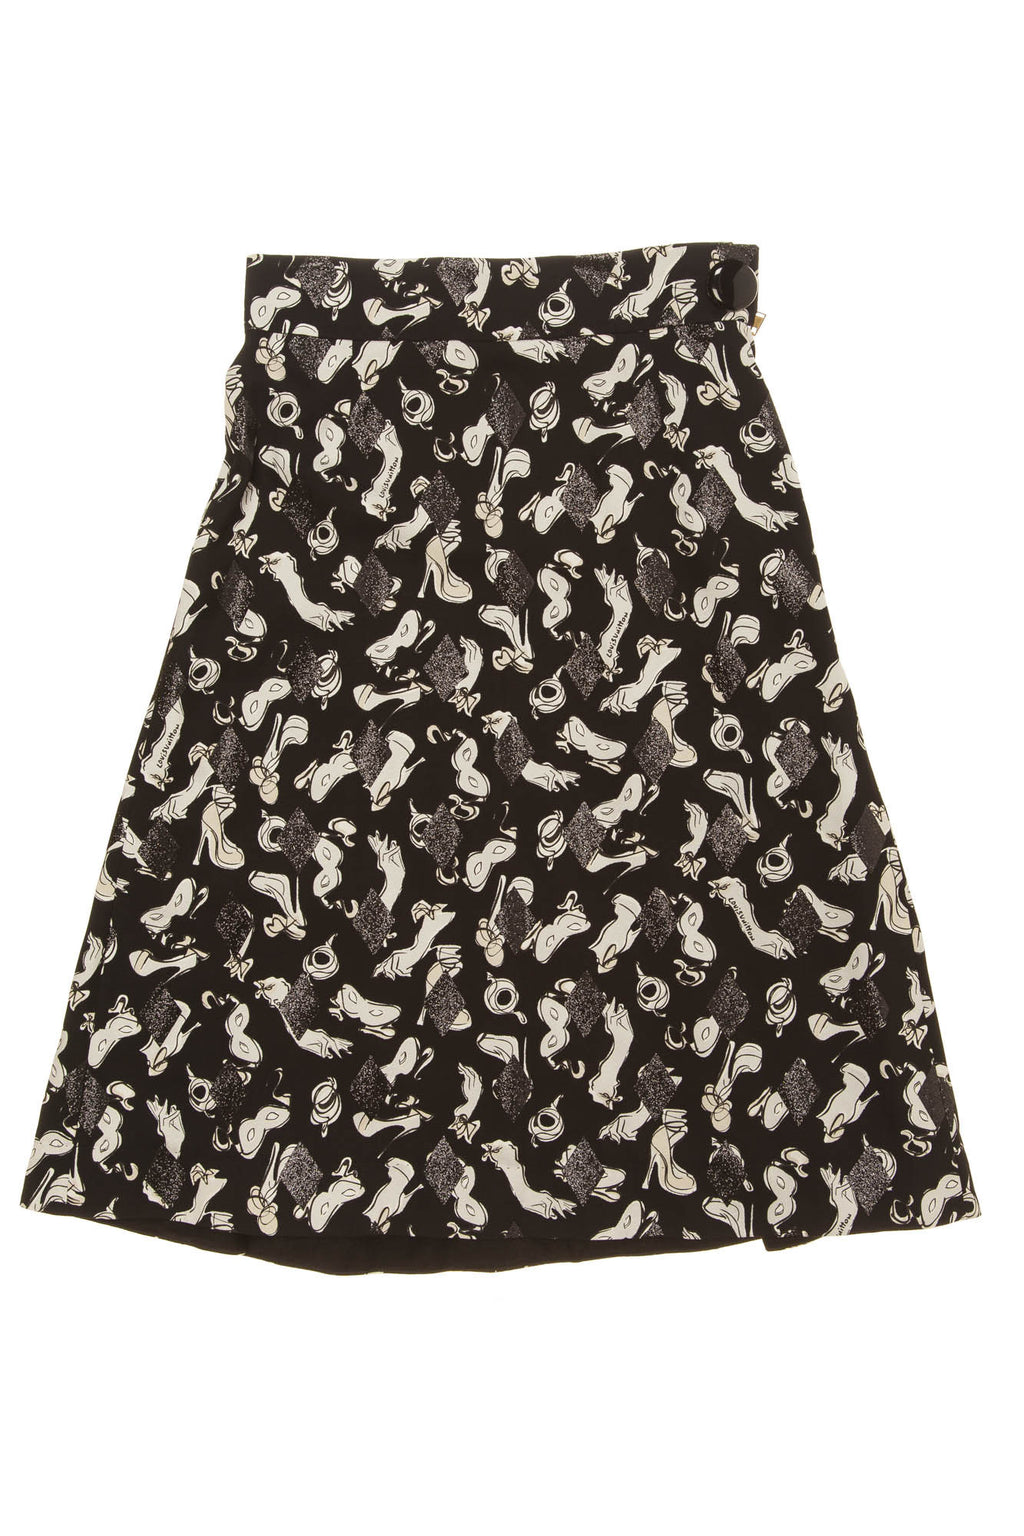 Louis Vuitton - White and Black Print Skirt - FR 40